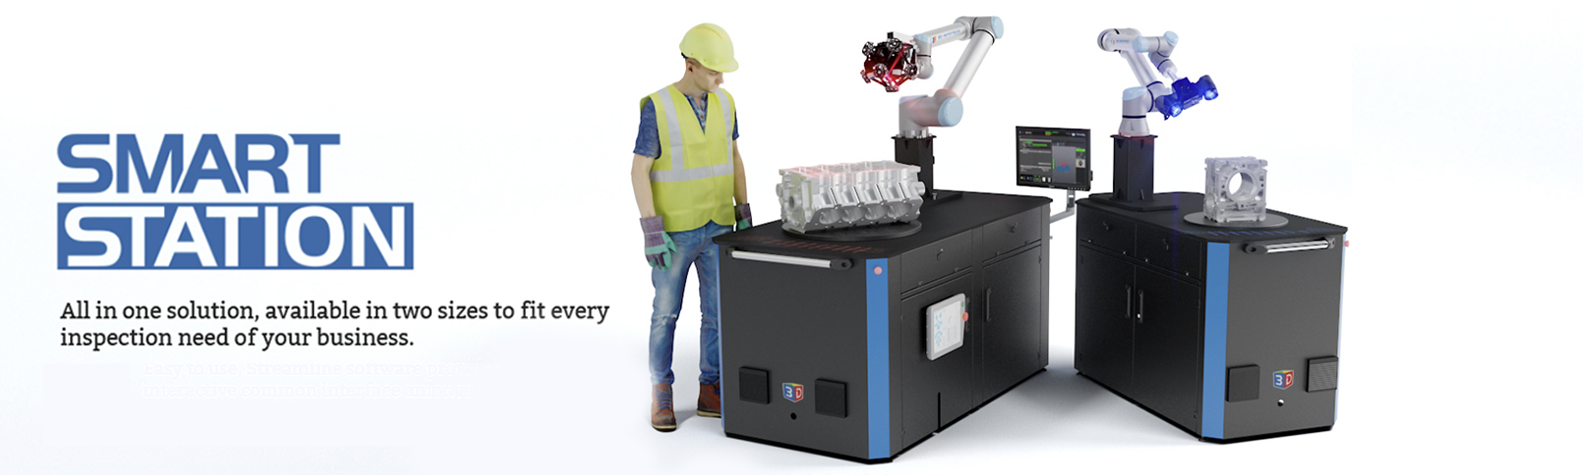 Automated Inspection - Universal Metrology Automation banner